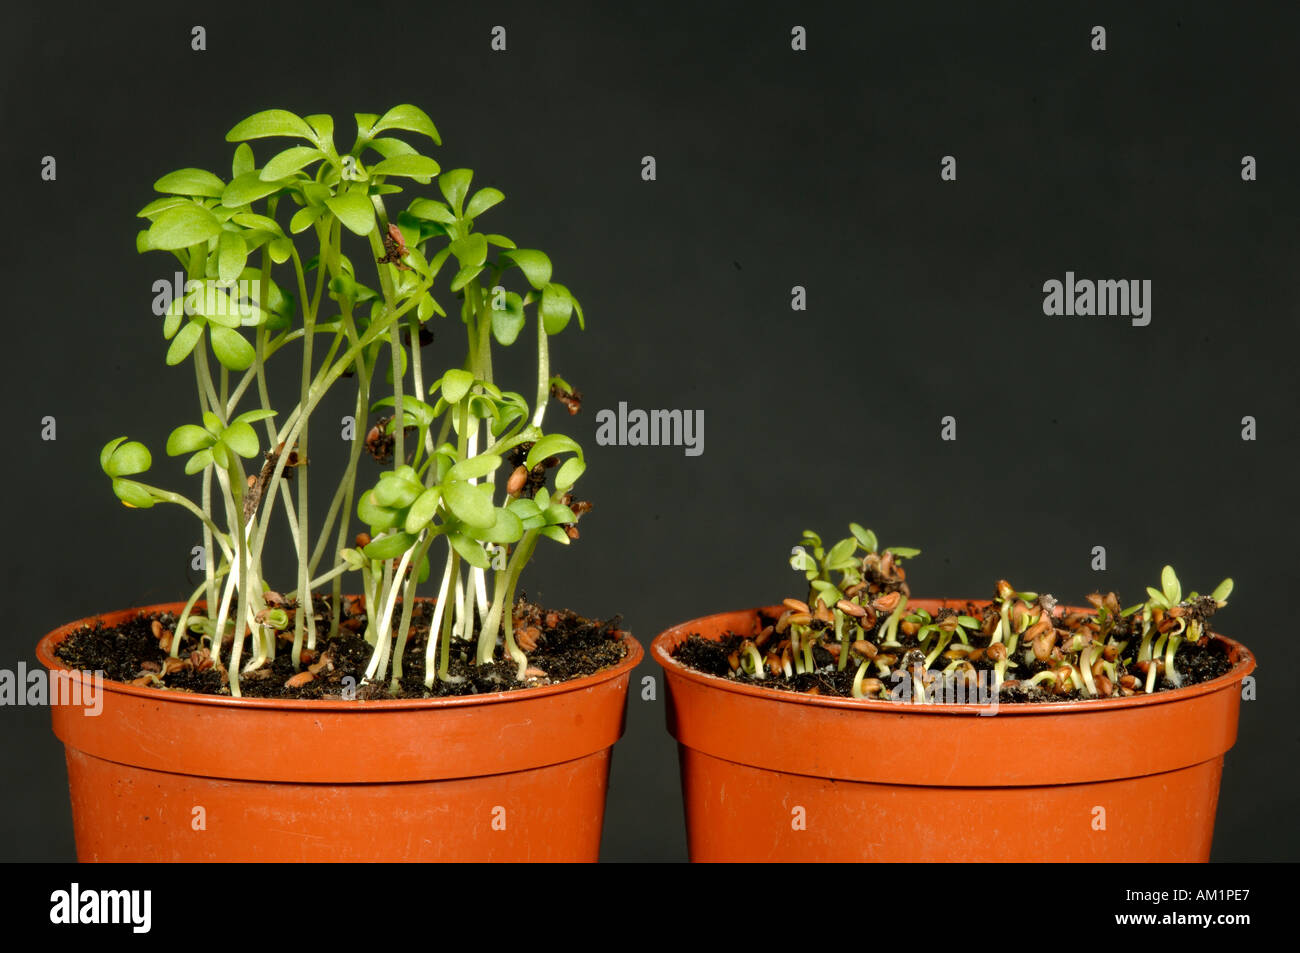 Comparison of cress seedlings grown in normal and cold temperatures - Stock Image